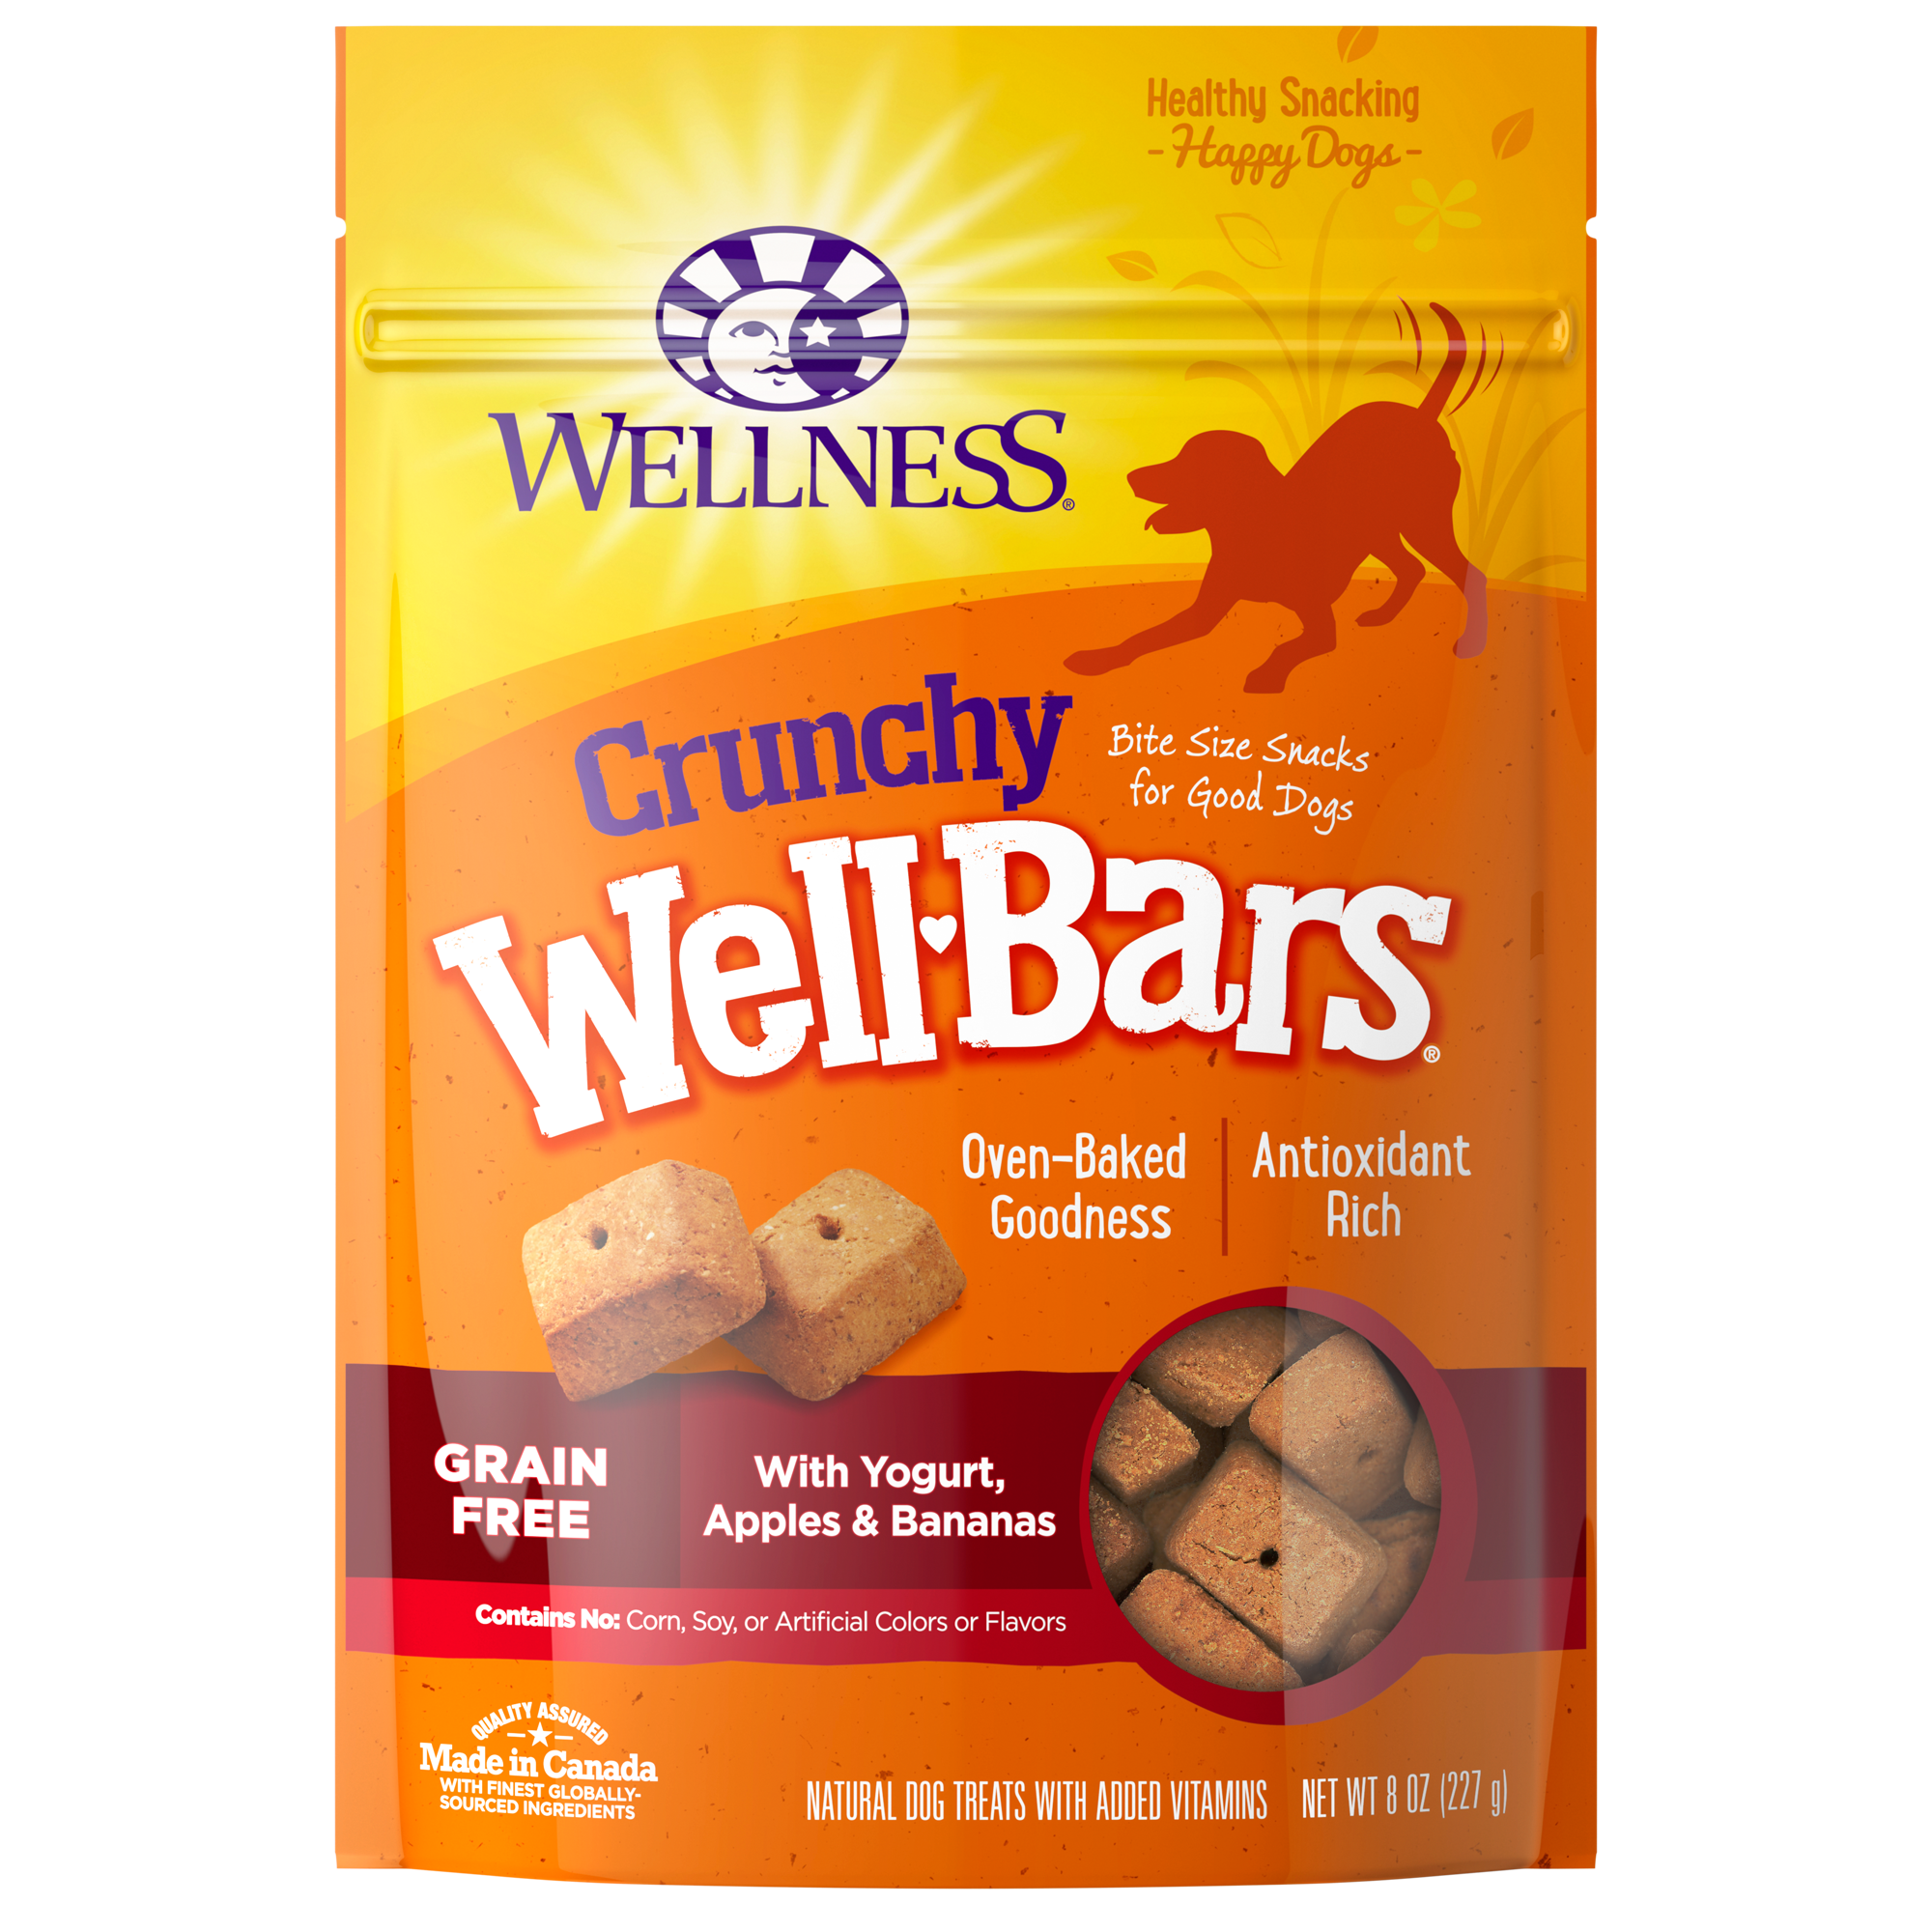 Wellbars Yogurt Apples Amp Bananas Wellness Pet Food